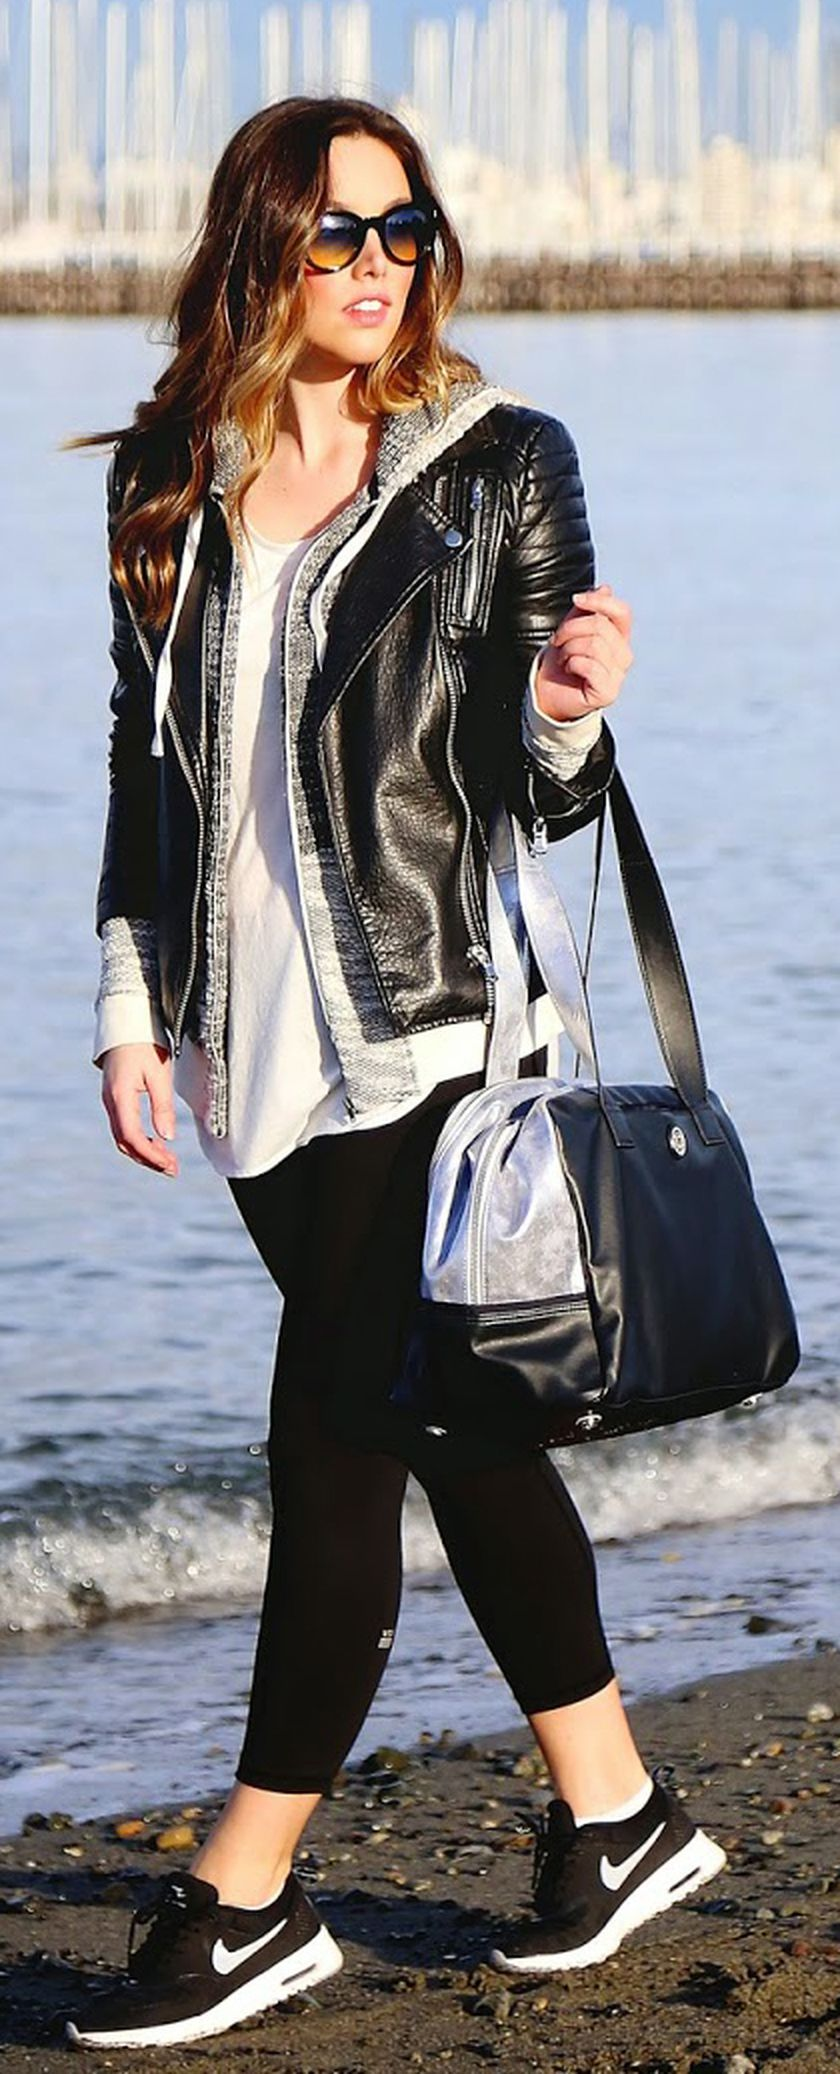 Sporty black leggings outfit and sneakers 109 - Fashion Best